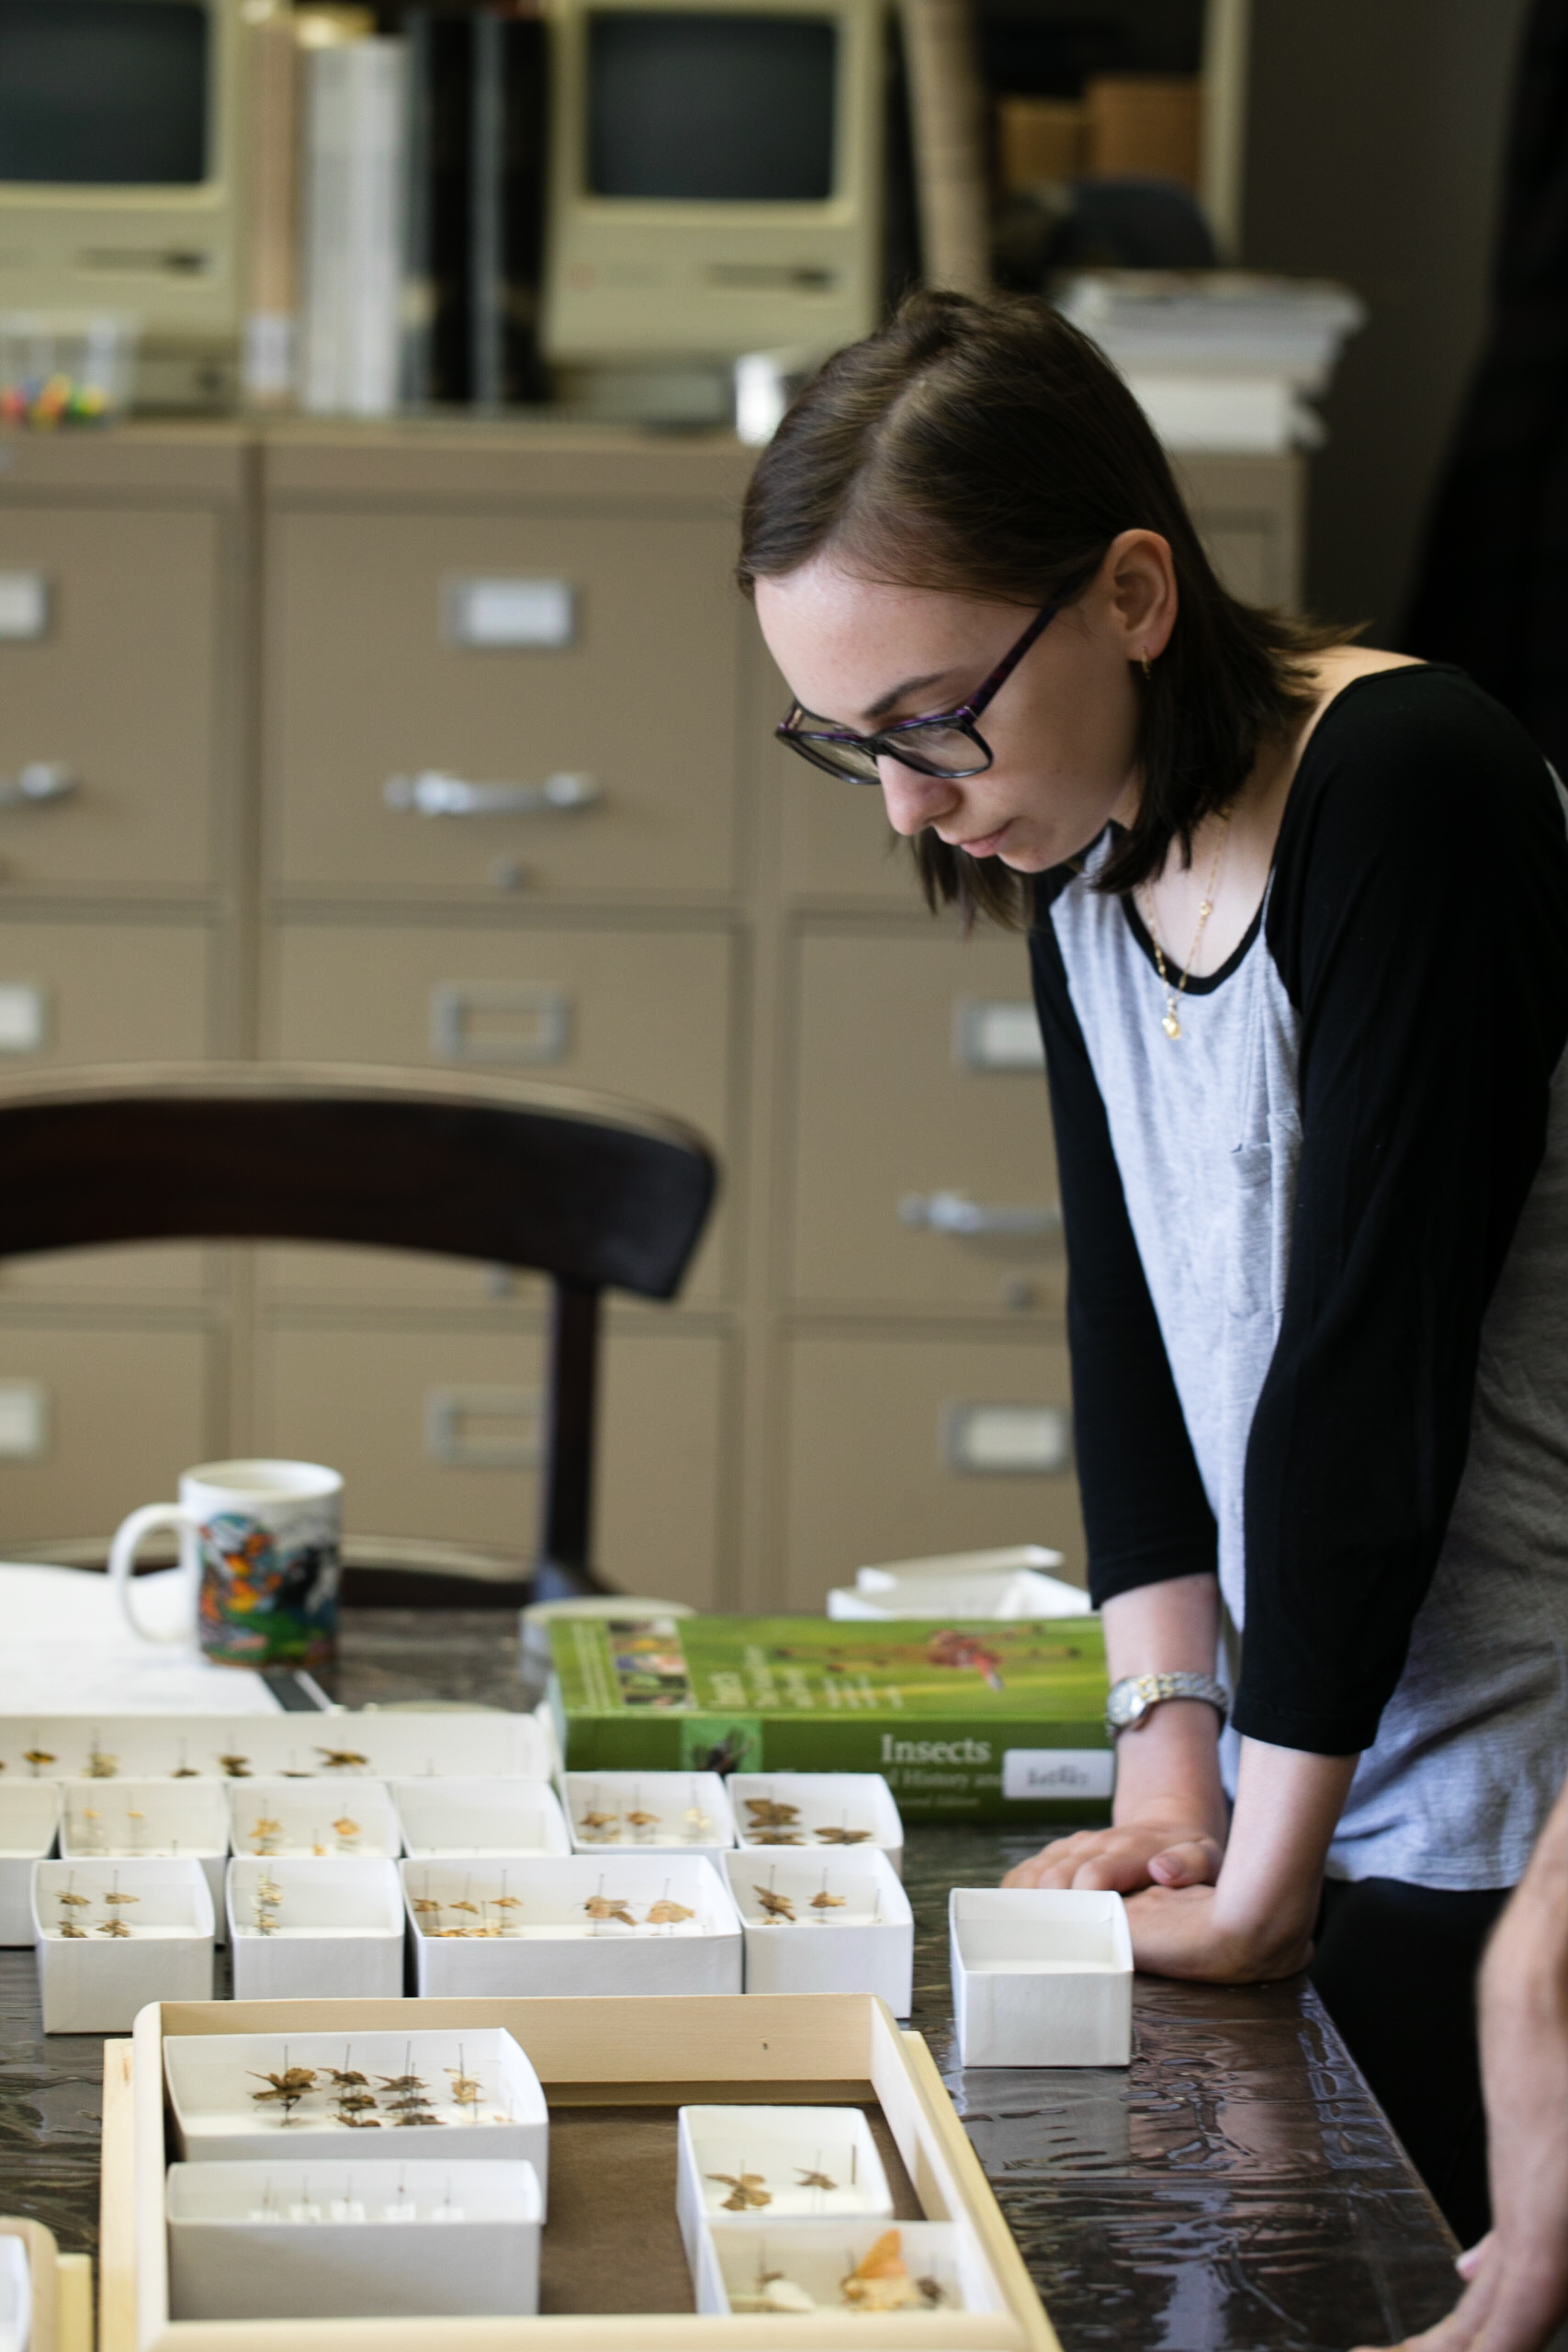 A student intern sorts moth specimens